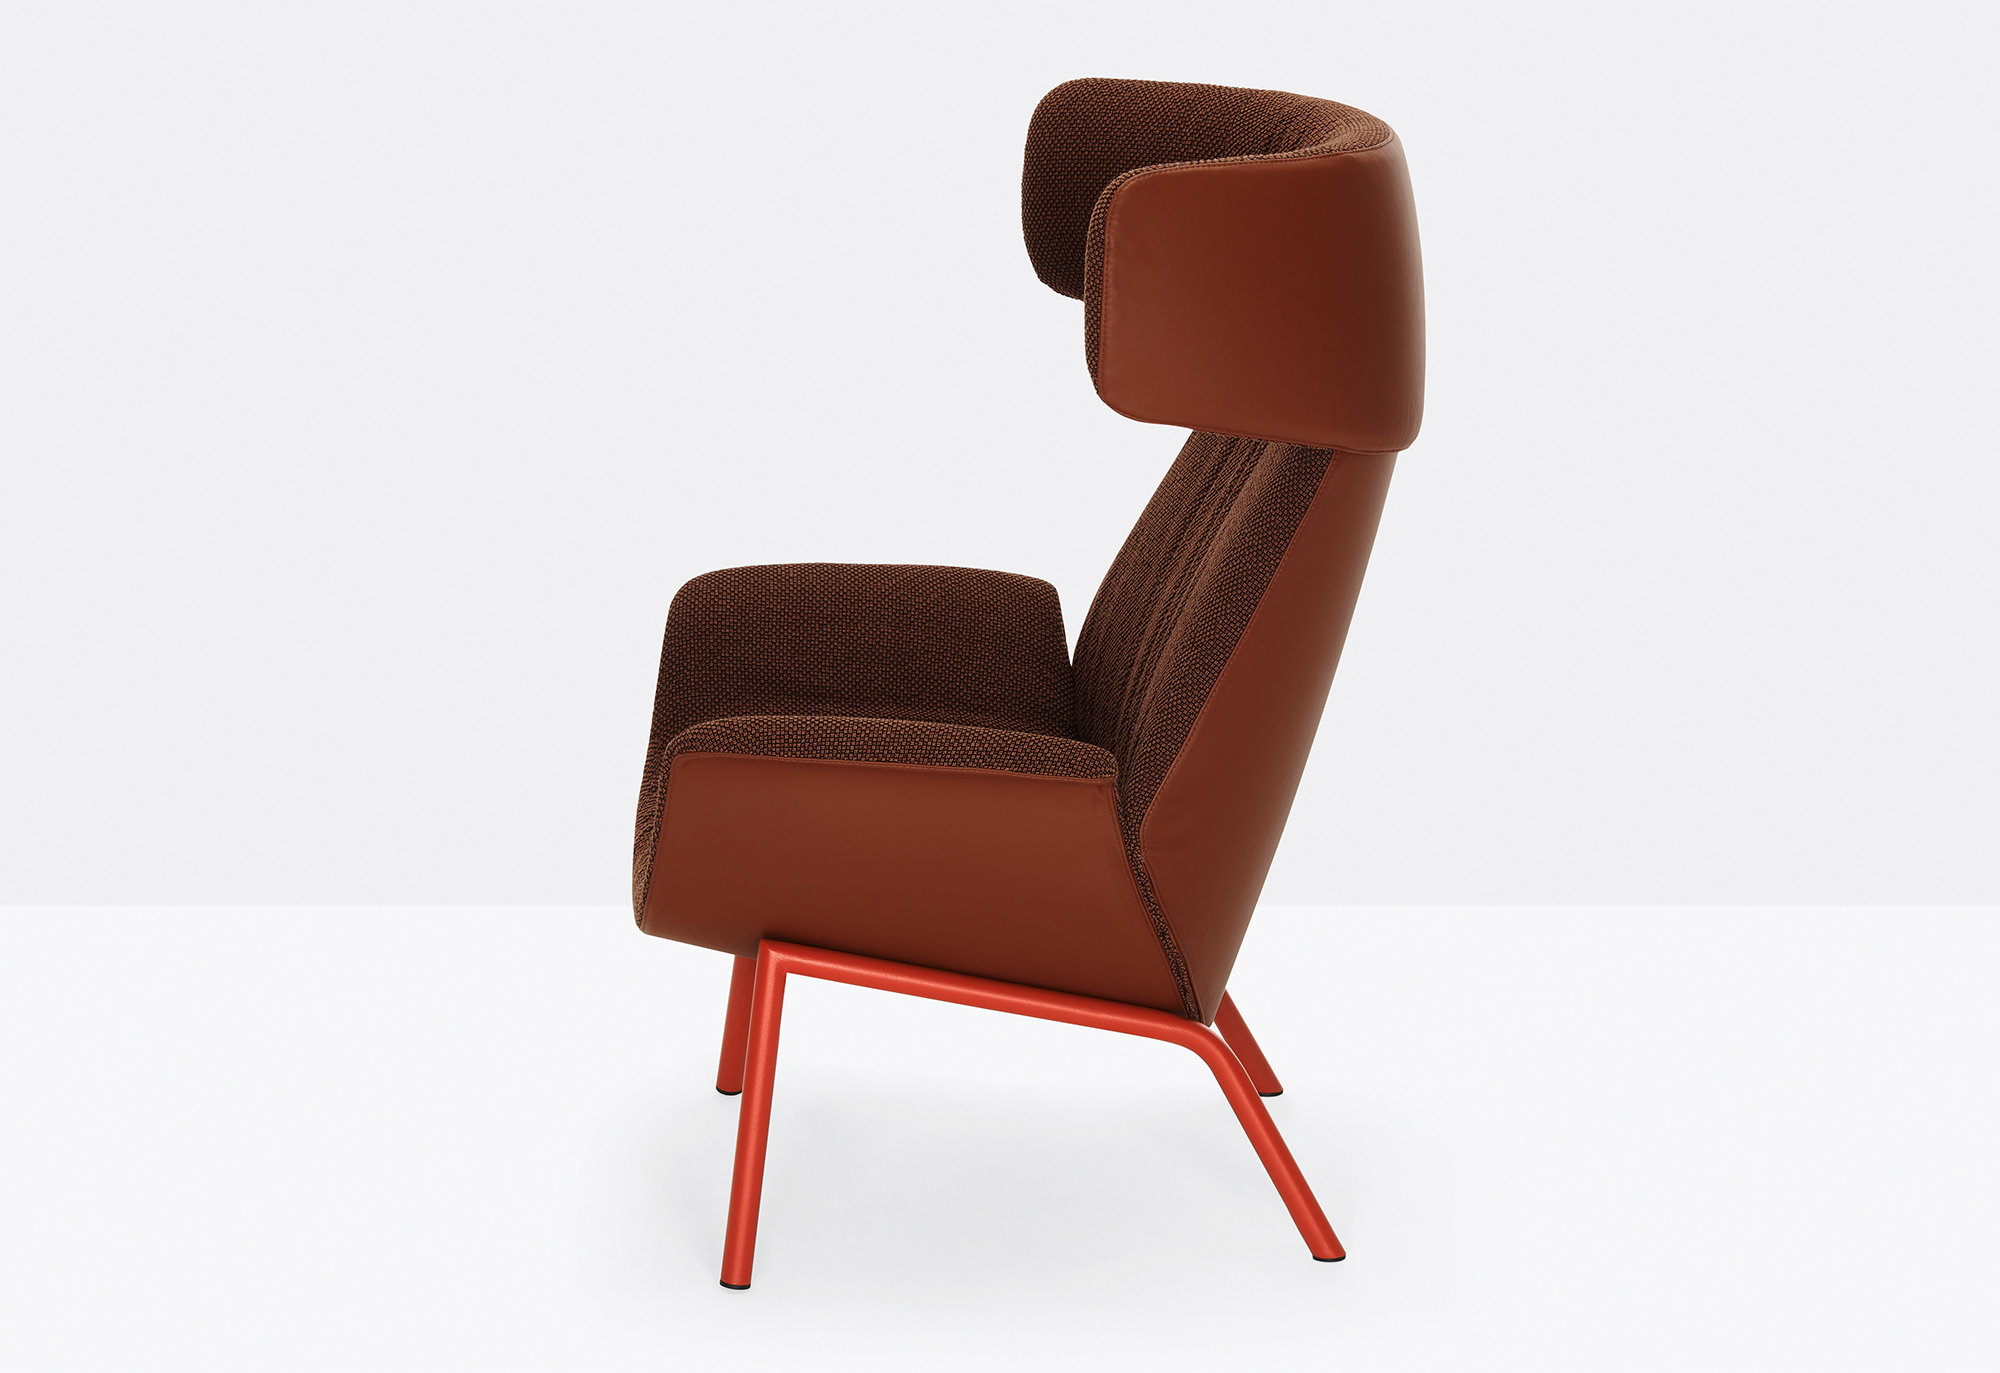 Ila Upholstered Lounge Chair with Headrest